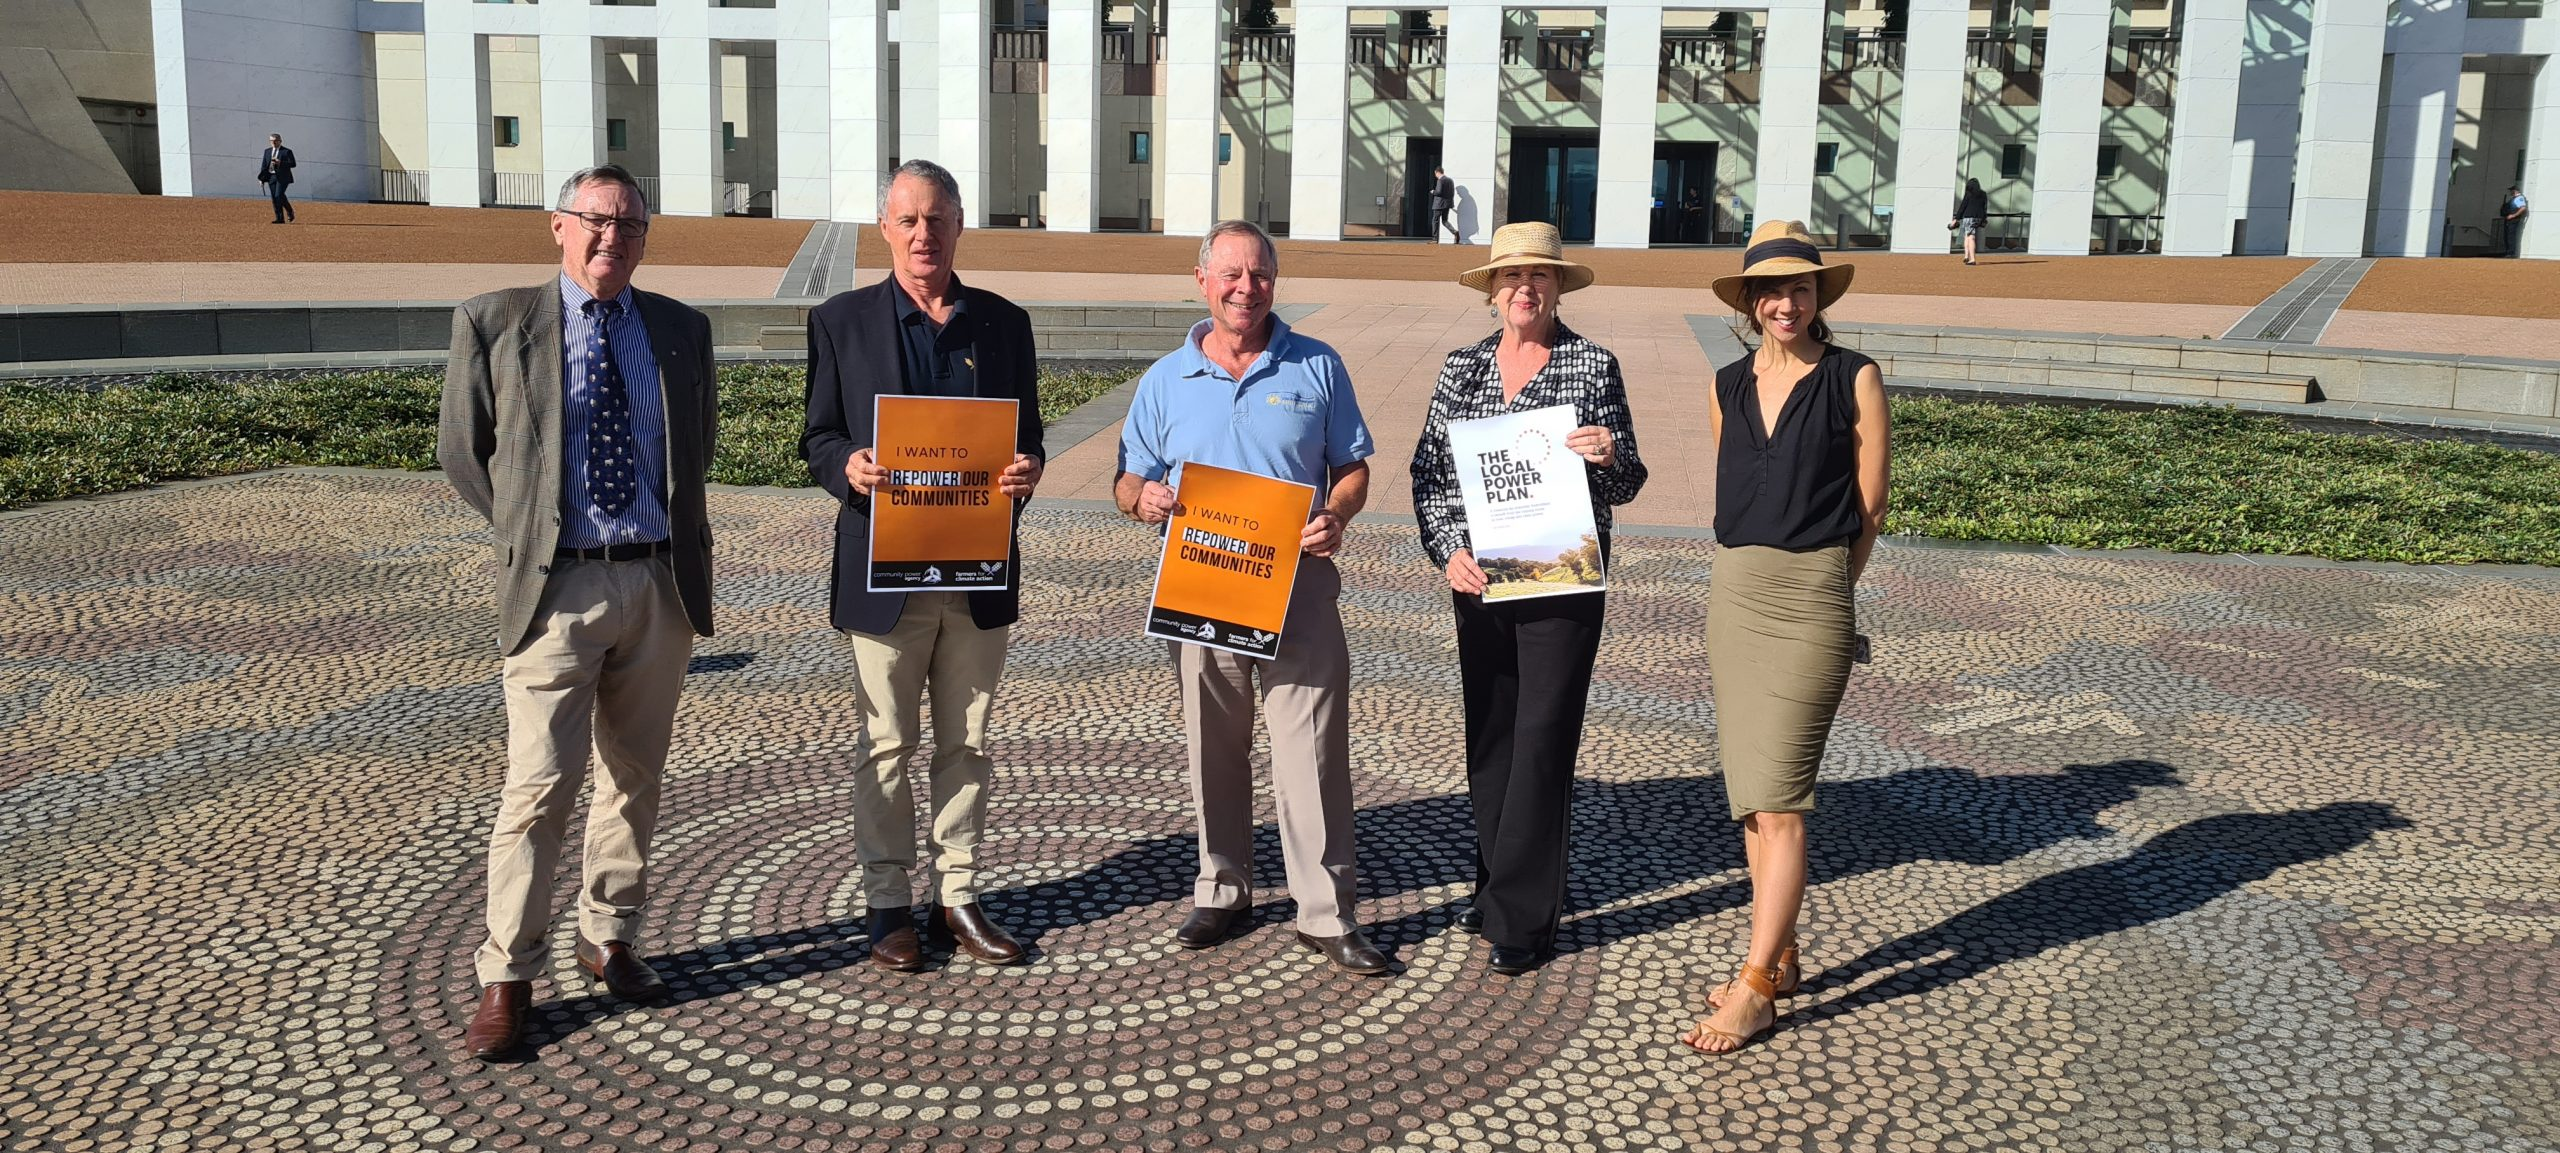 Central West farmer in Canberra to back renewables for regional renewal